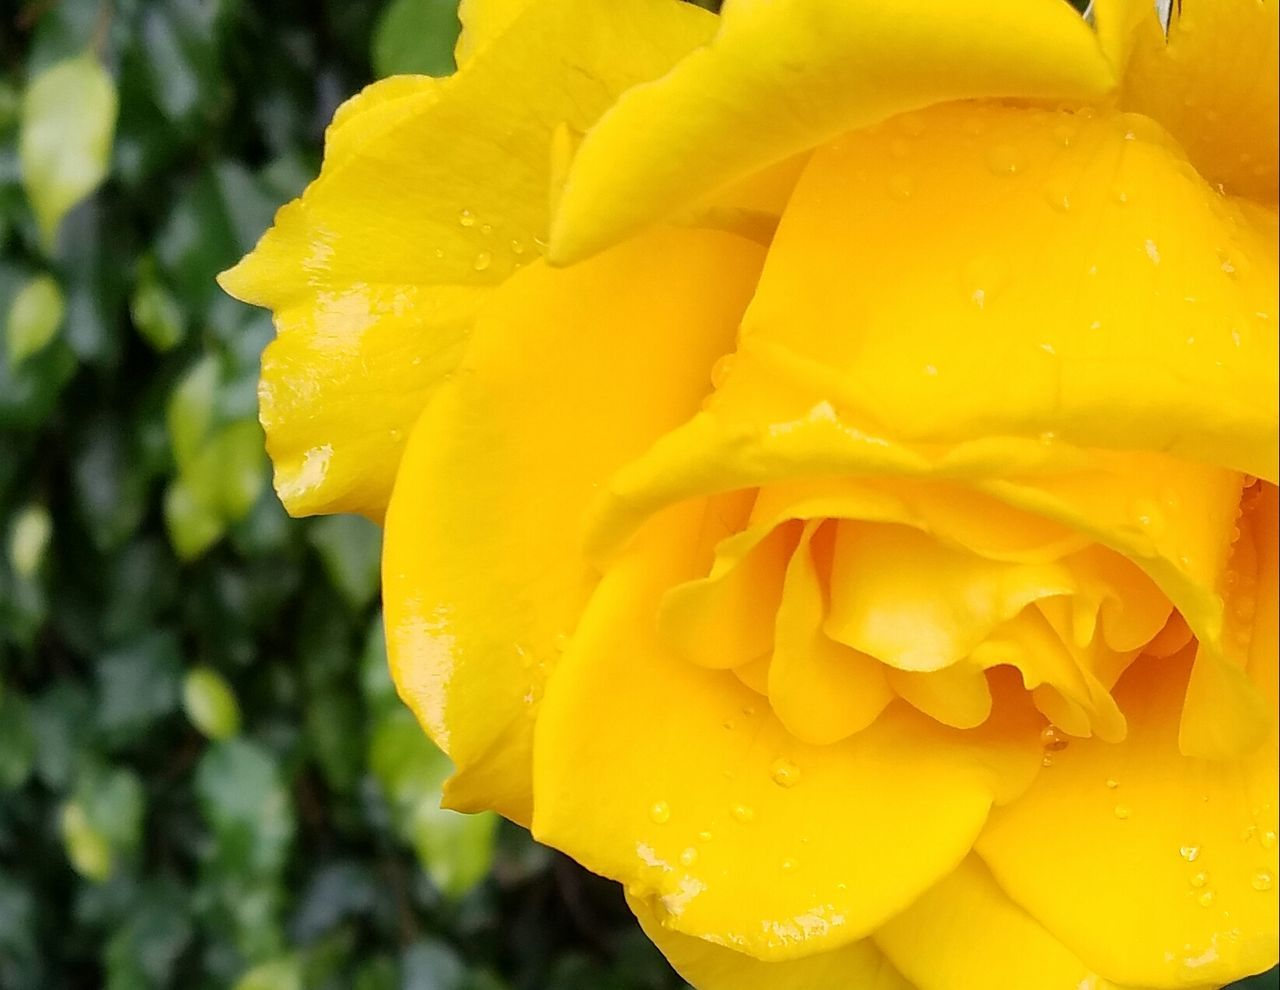 Yellow Flower Close-up Nature Flower Head Fragility Freshness Petal Drop Plant Blossom Outdoors Beauty In Nature No People Day EyeEm Nature Lover Copy Space Meditation EyeEm Best Shots Fine Art Photography This Week On Eyeem Tranquility Yellow Rose Still Life Rainy Days